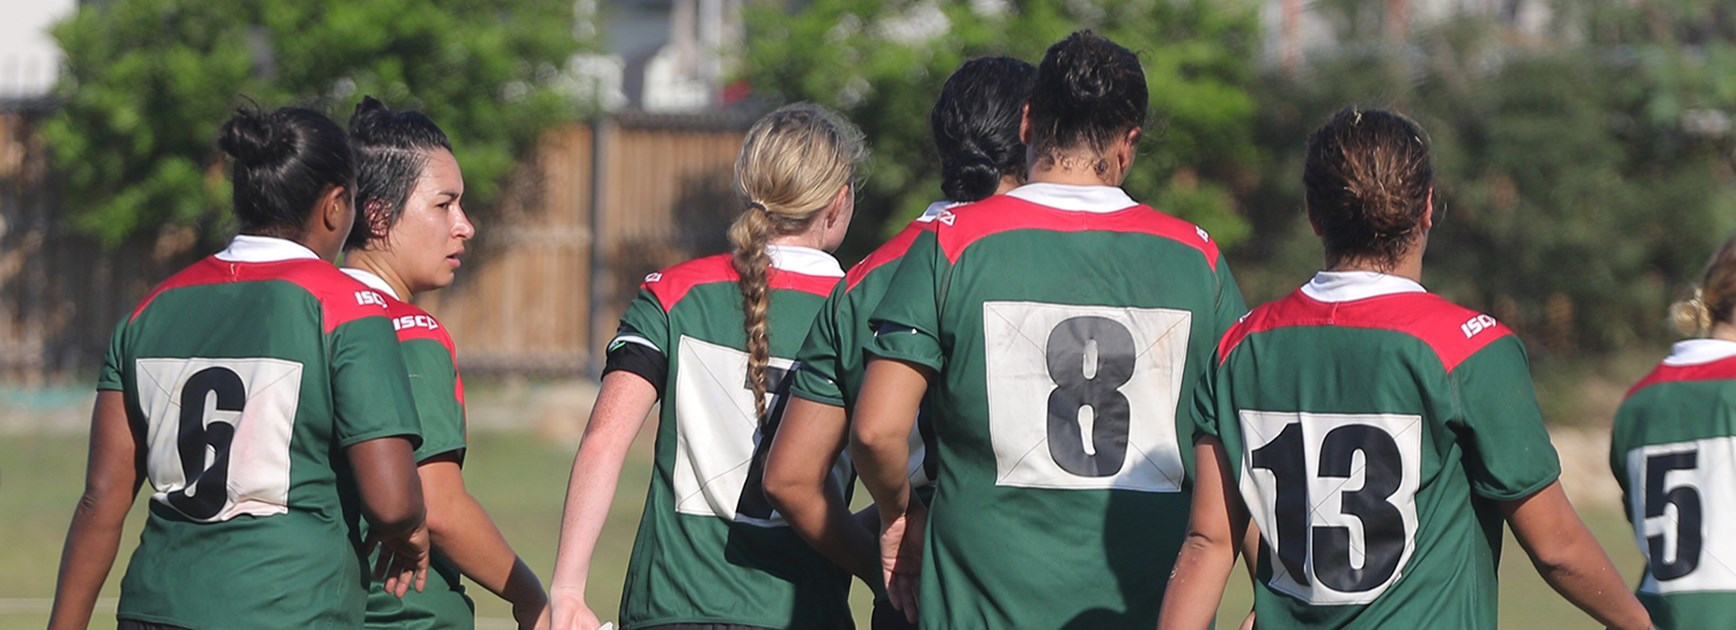 Rabbitohs women's team announce Round 4 side